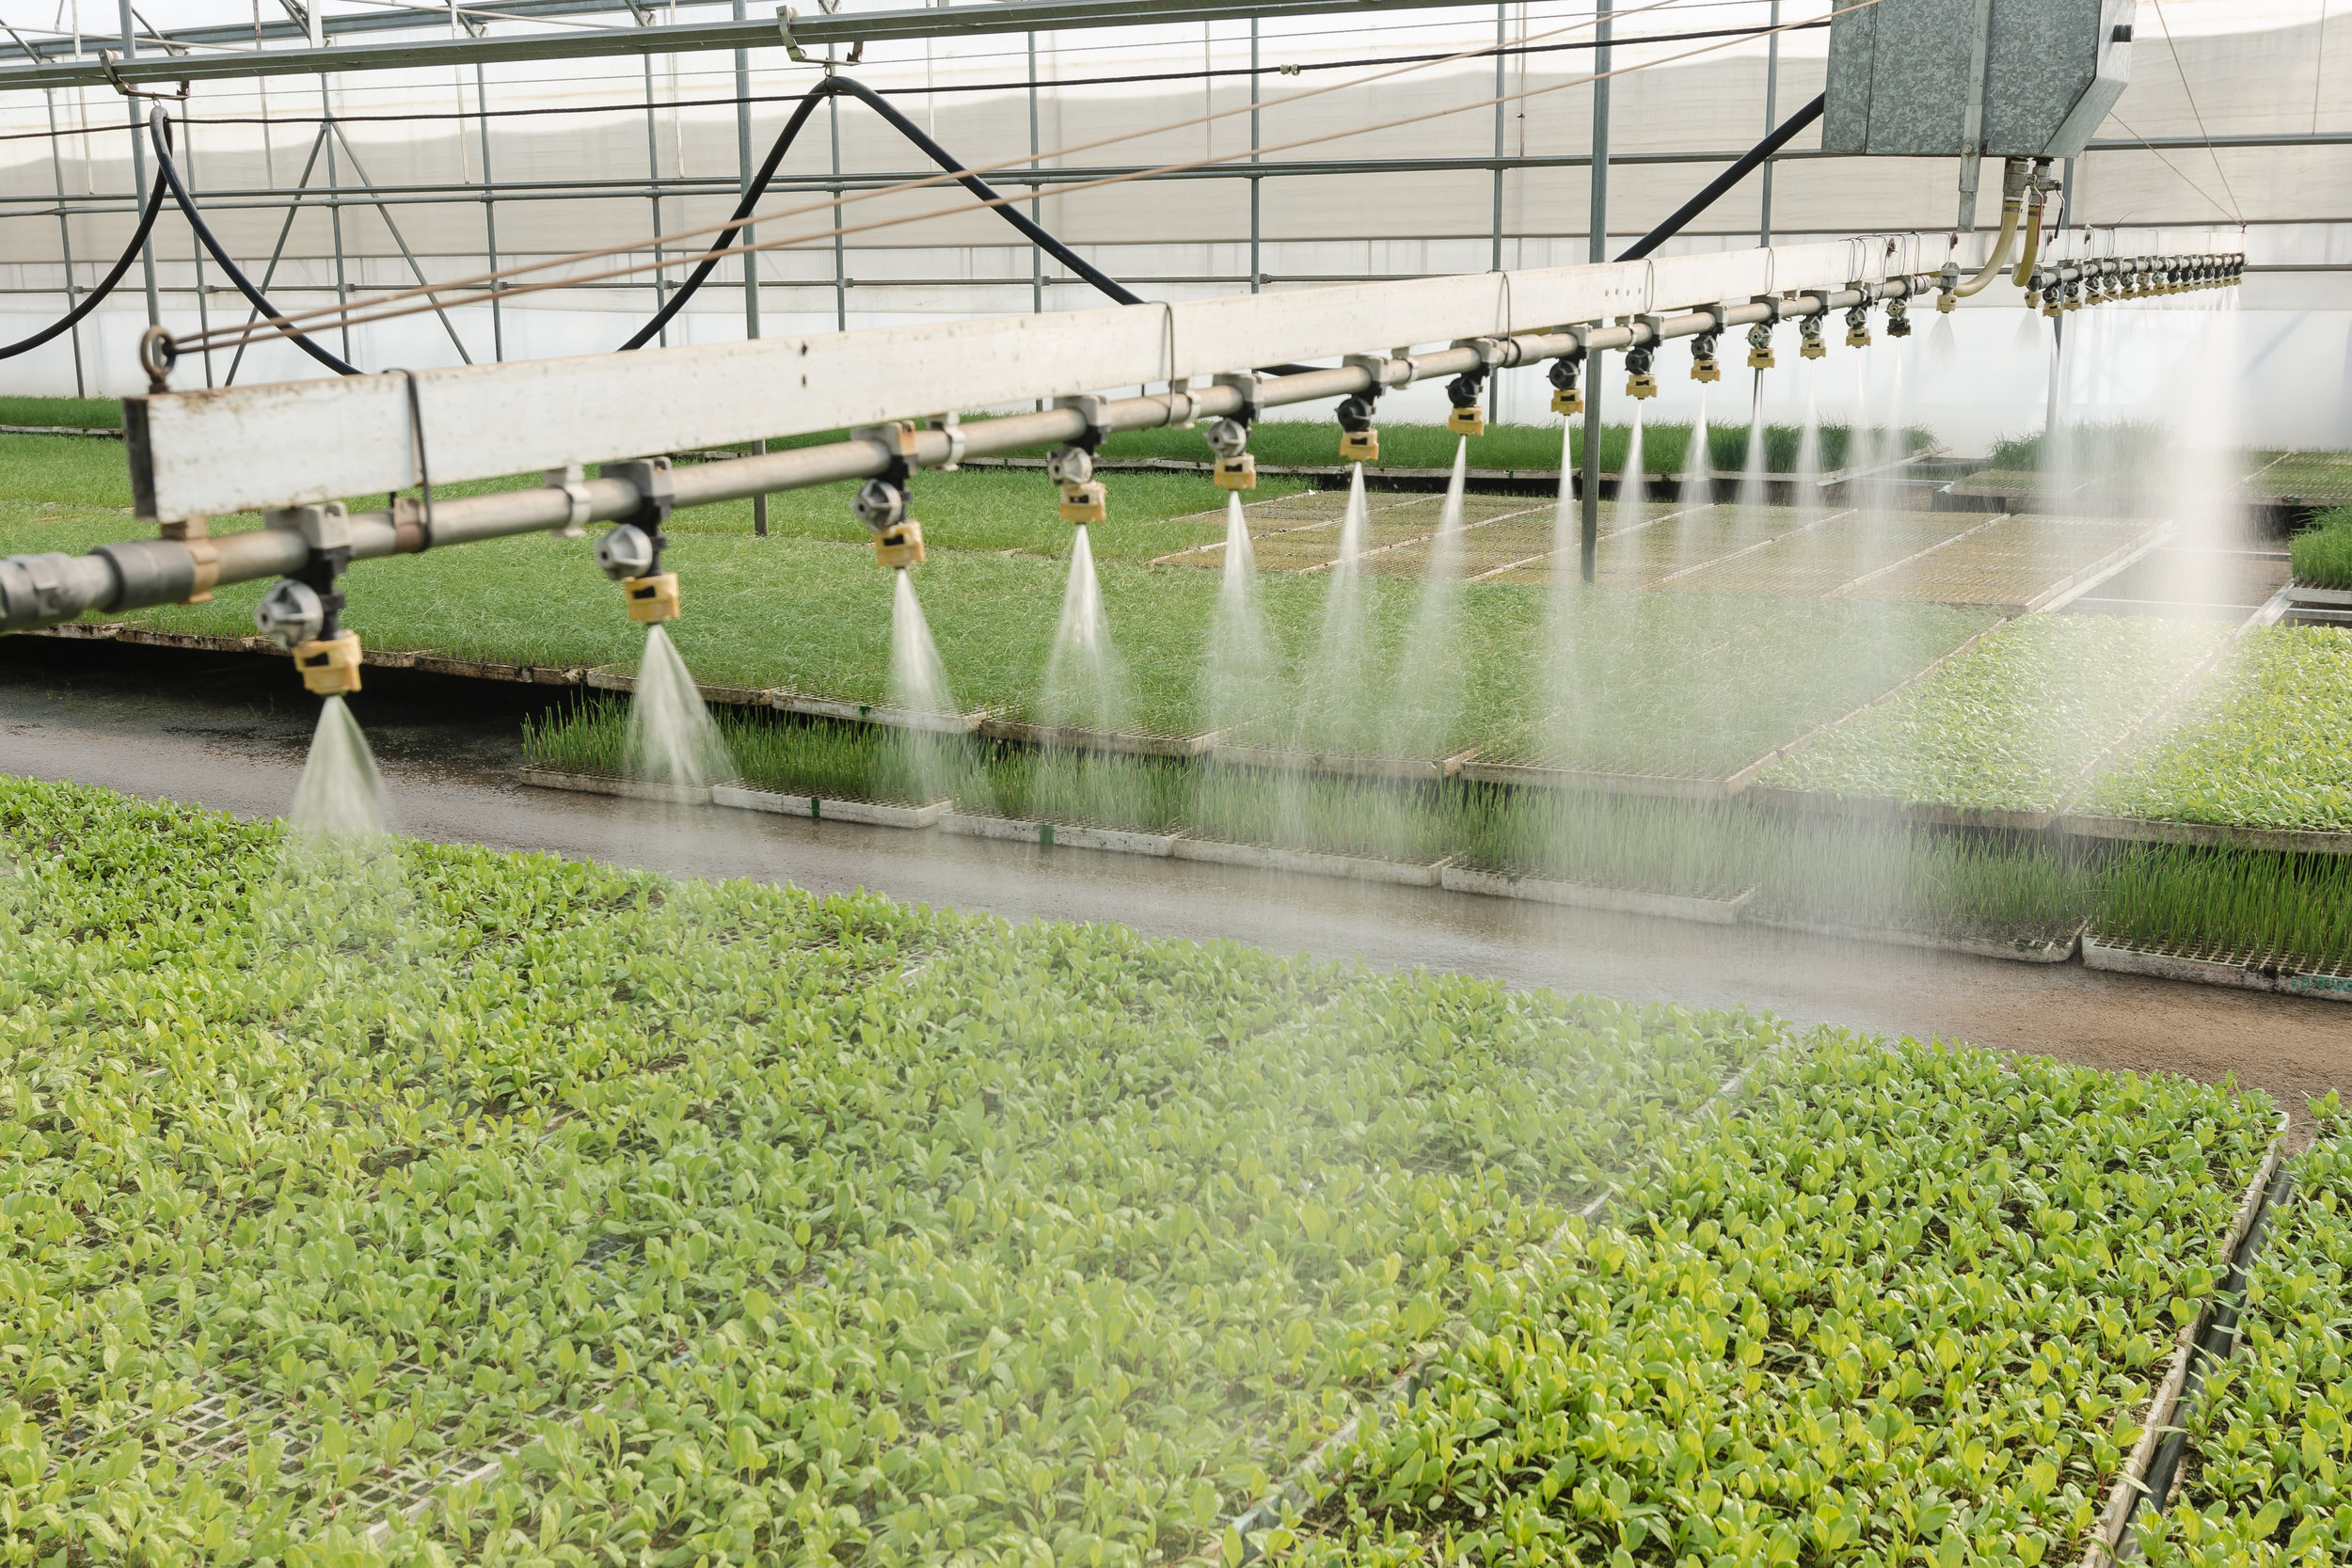 FERTIGATION & IRRIGATION - We are authorized, expert installers of fertigation and irrigation systems. Our automated nutrient injection systems handle both the measurement and mixture of nutrients, as well as the delivery of those components to the organism. This automation is essential to any large-scale cultivation in order to maintain crop consistency.